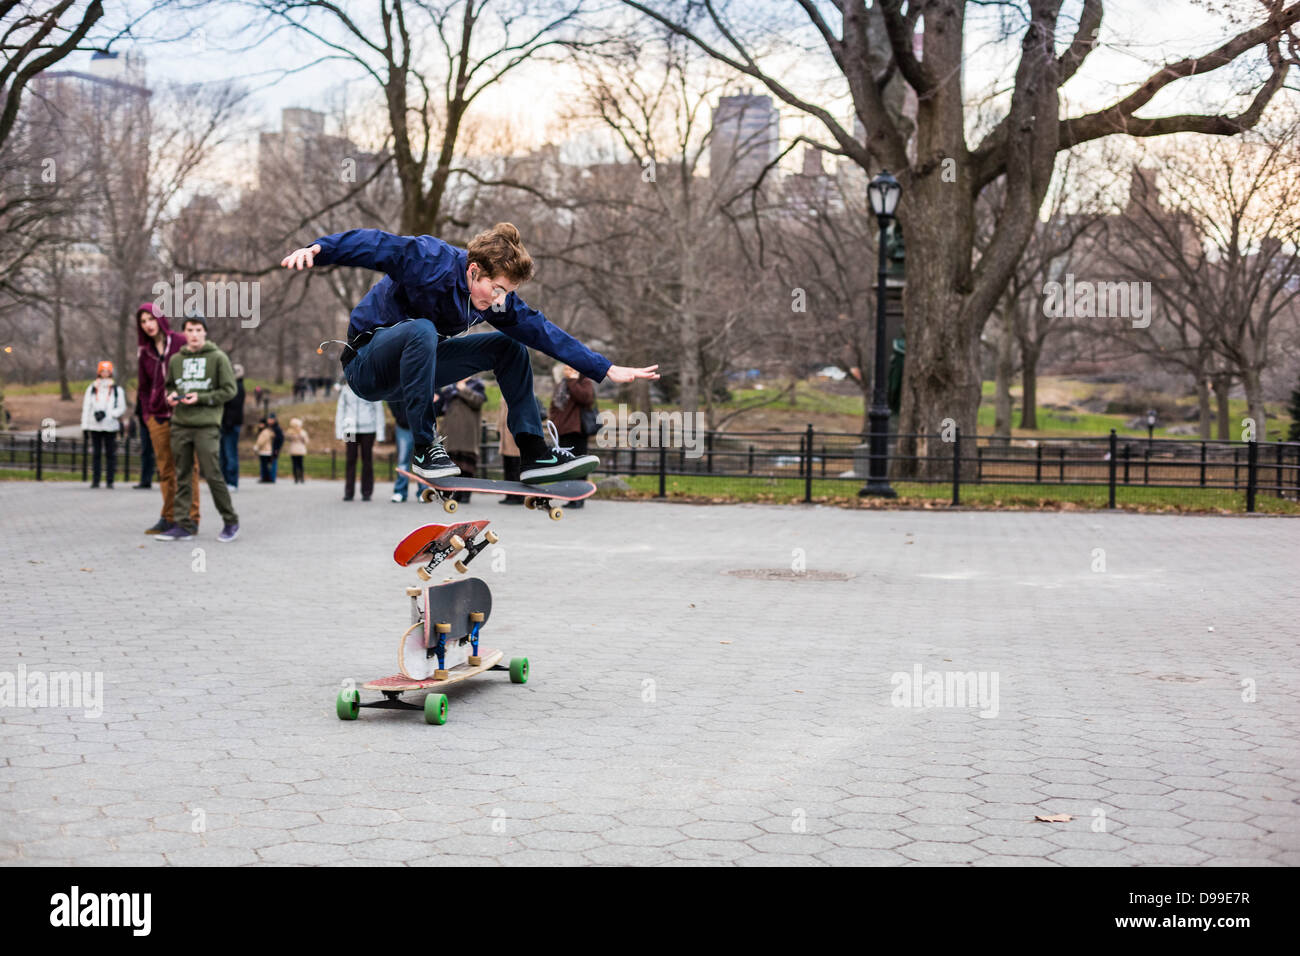 A young skateboarder executing an acrobatic jump in Central Park, New York City - Stock Image